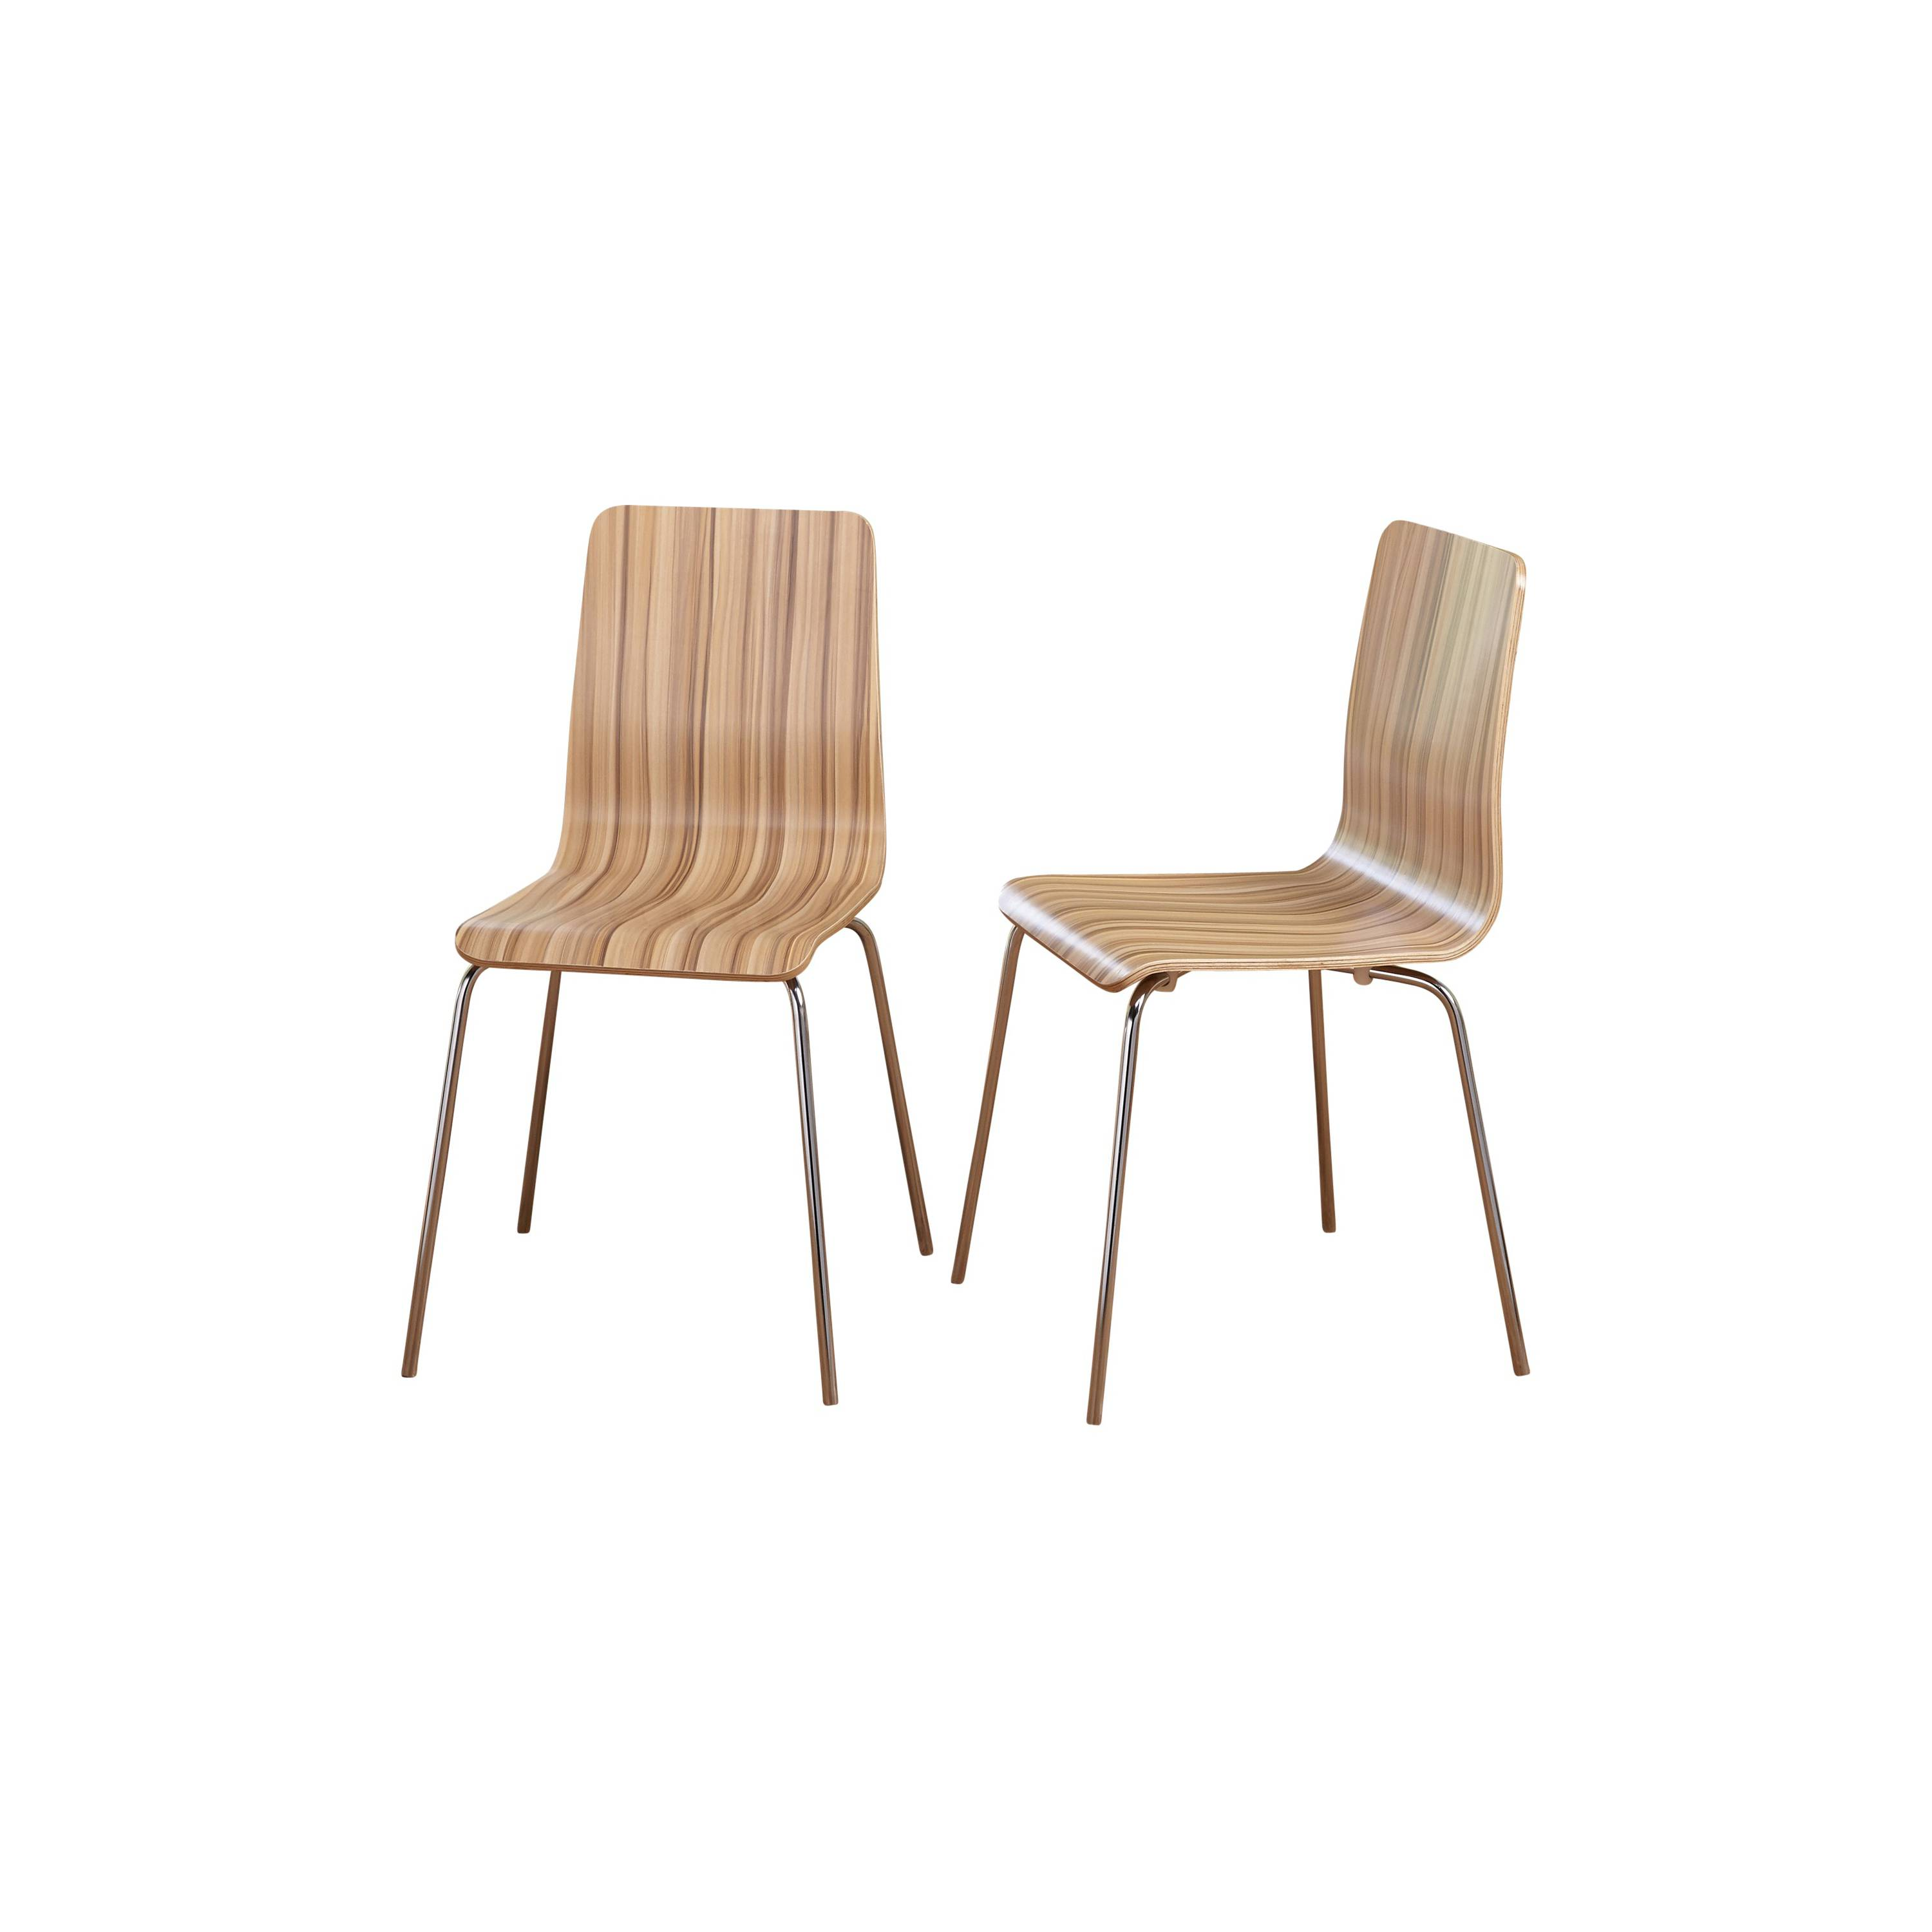 Looking For Chairs Modern Dining Chairs That Are Affordable Stylish And Good